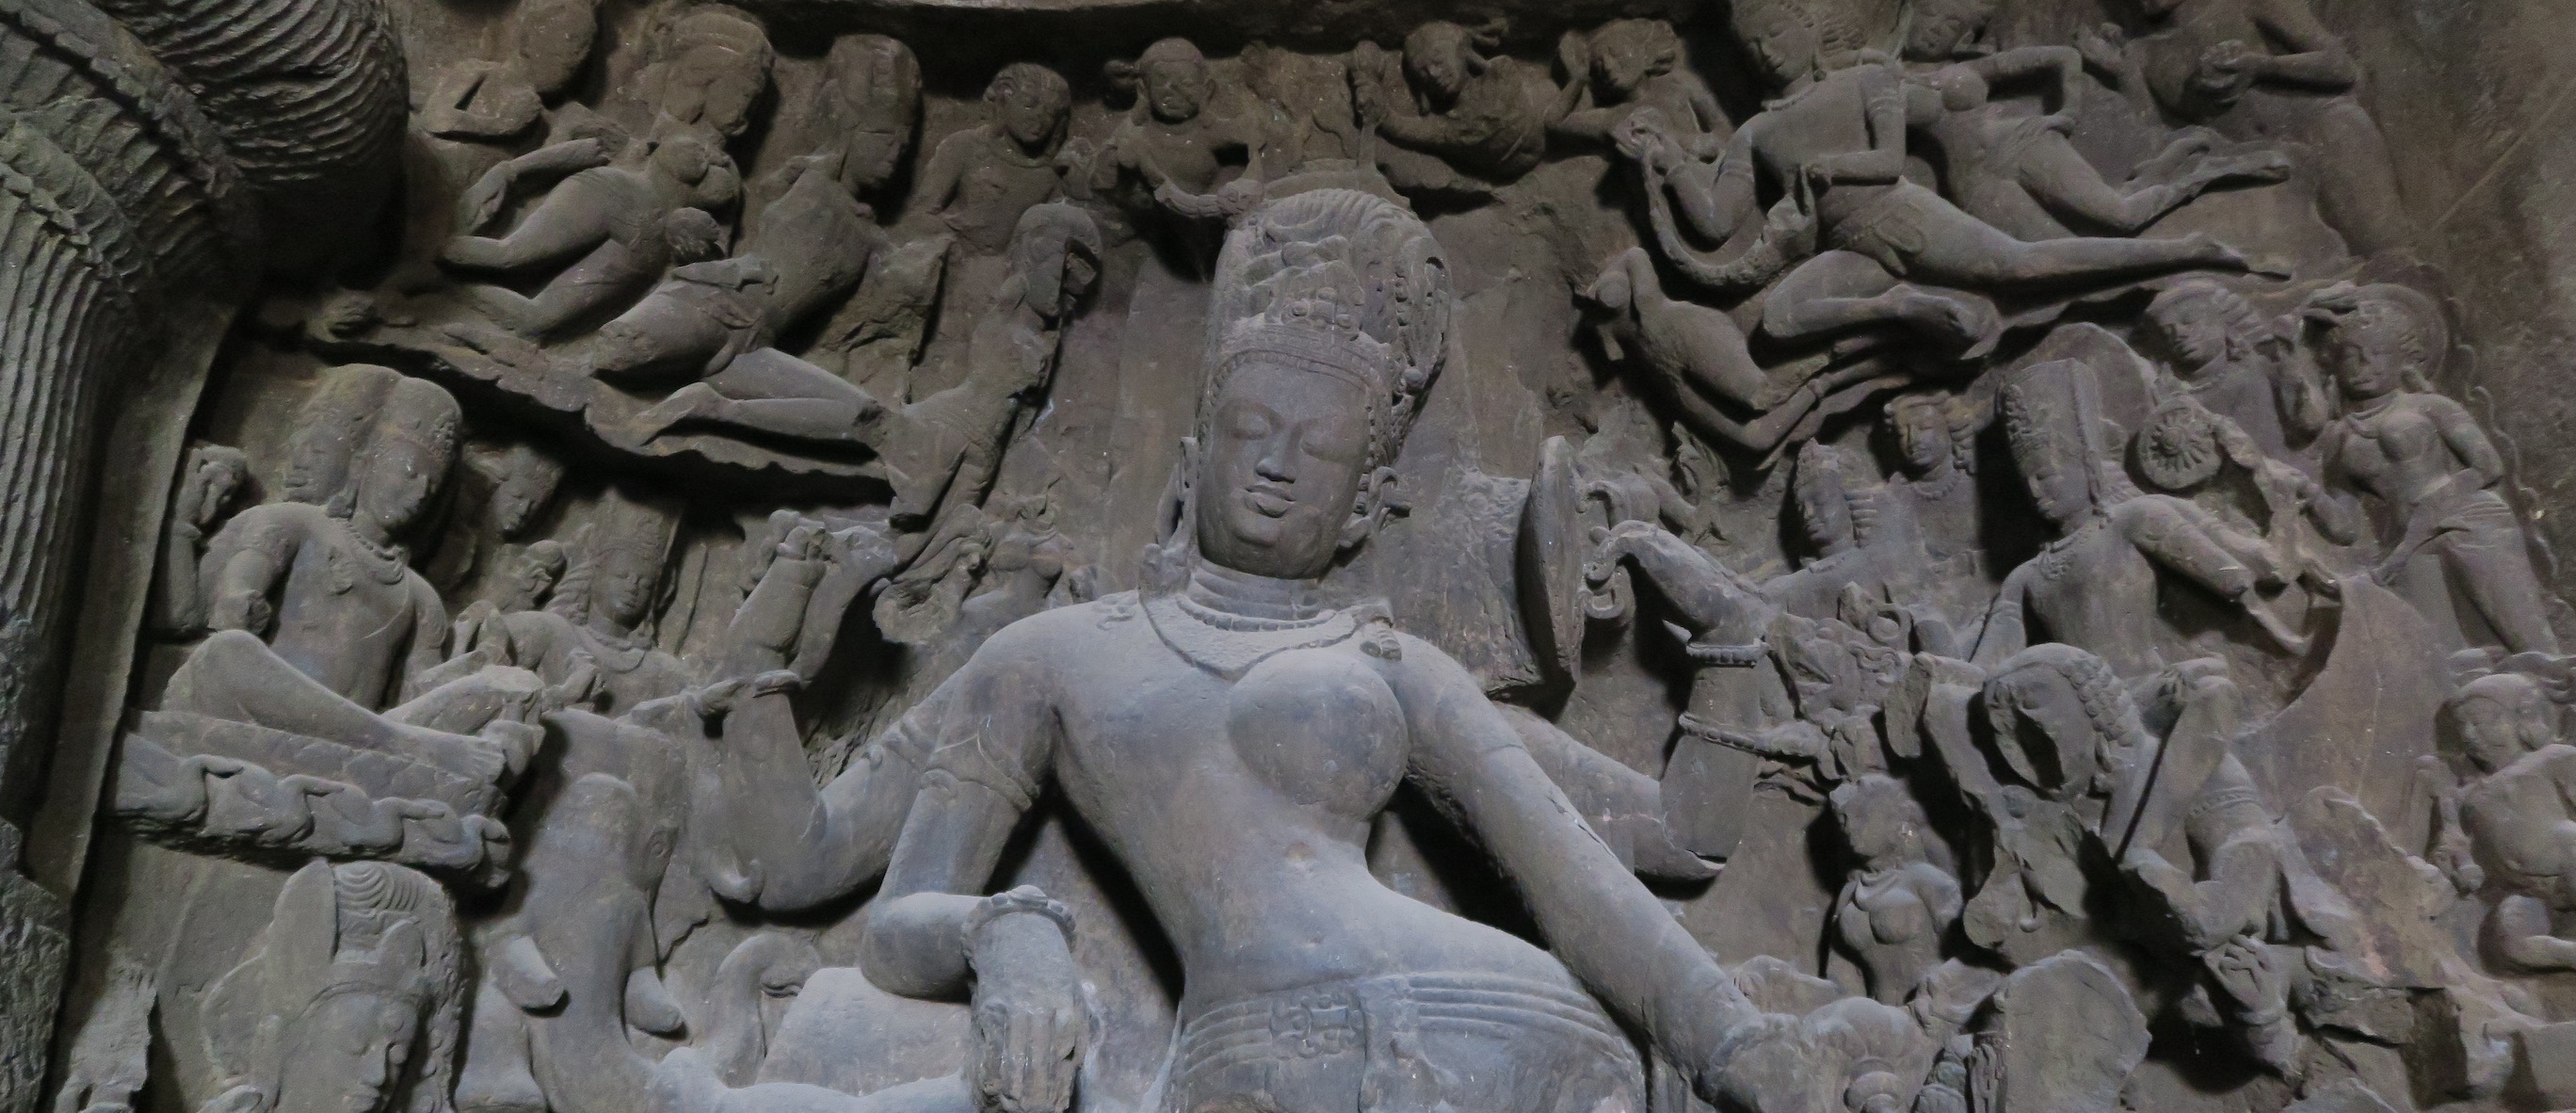 Bas relief of a female deity surrounded by many smaller carvings